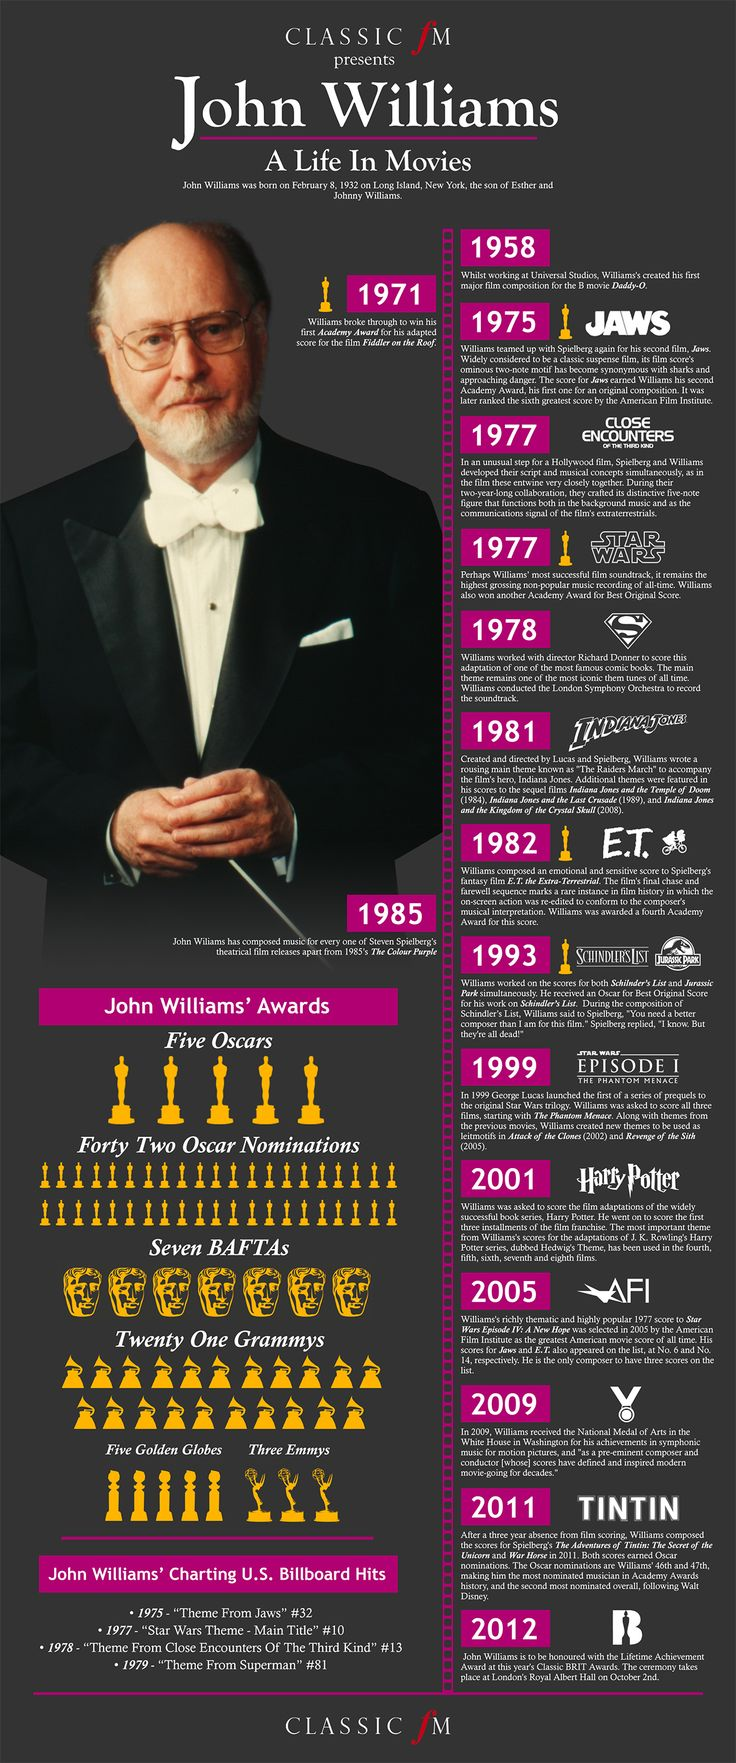 John Williams' Life in Movies: Infographic From Harry Potter to Starwars, John Williams has probably composed the most successful sound tracks in history. But do you know how many movies he's worked on, how many awards he's won and when? John Williams' career in film music includes scores for Star Wars, Indiana Jones, E.T., Jaws and many more. Not only that, he's also got a formidable tally of Oscars, Baftas and Grammys too.